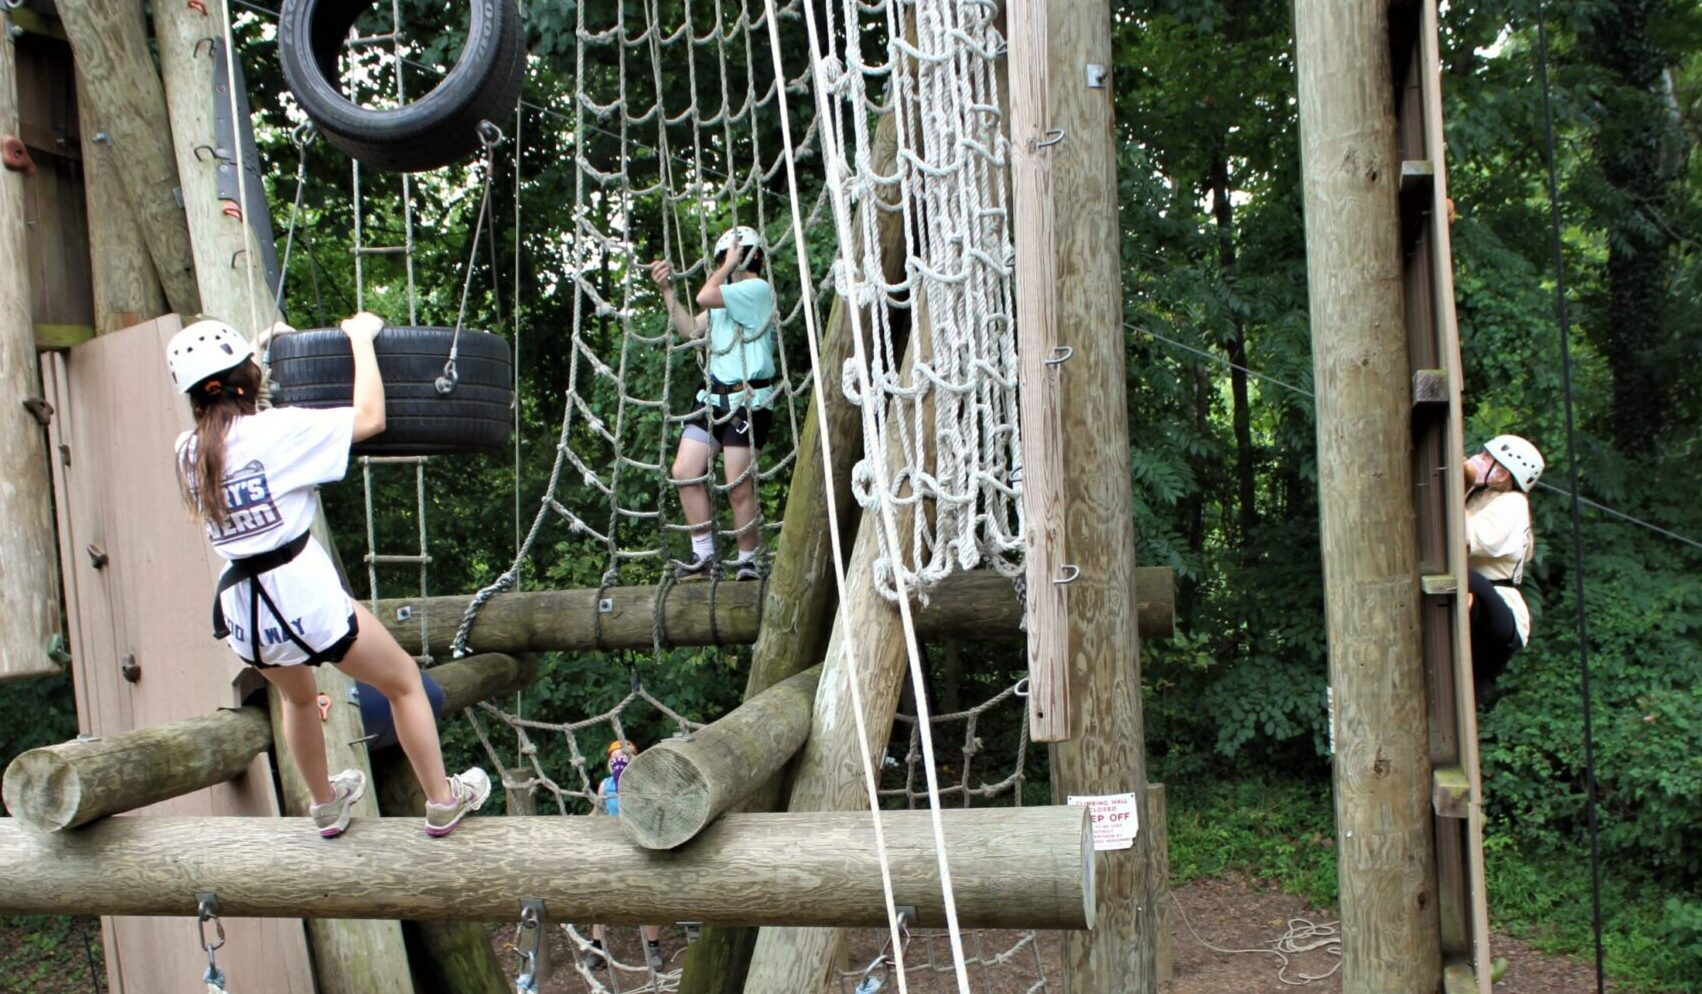 Three campers scale different sections of climbing apparatus while participating in Camp Phoenix Teen Grief Camp Aug. 15 at Terrapin Adventures in Savage, Maryland.